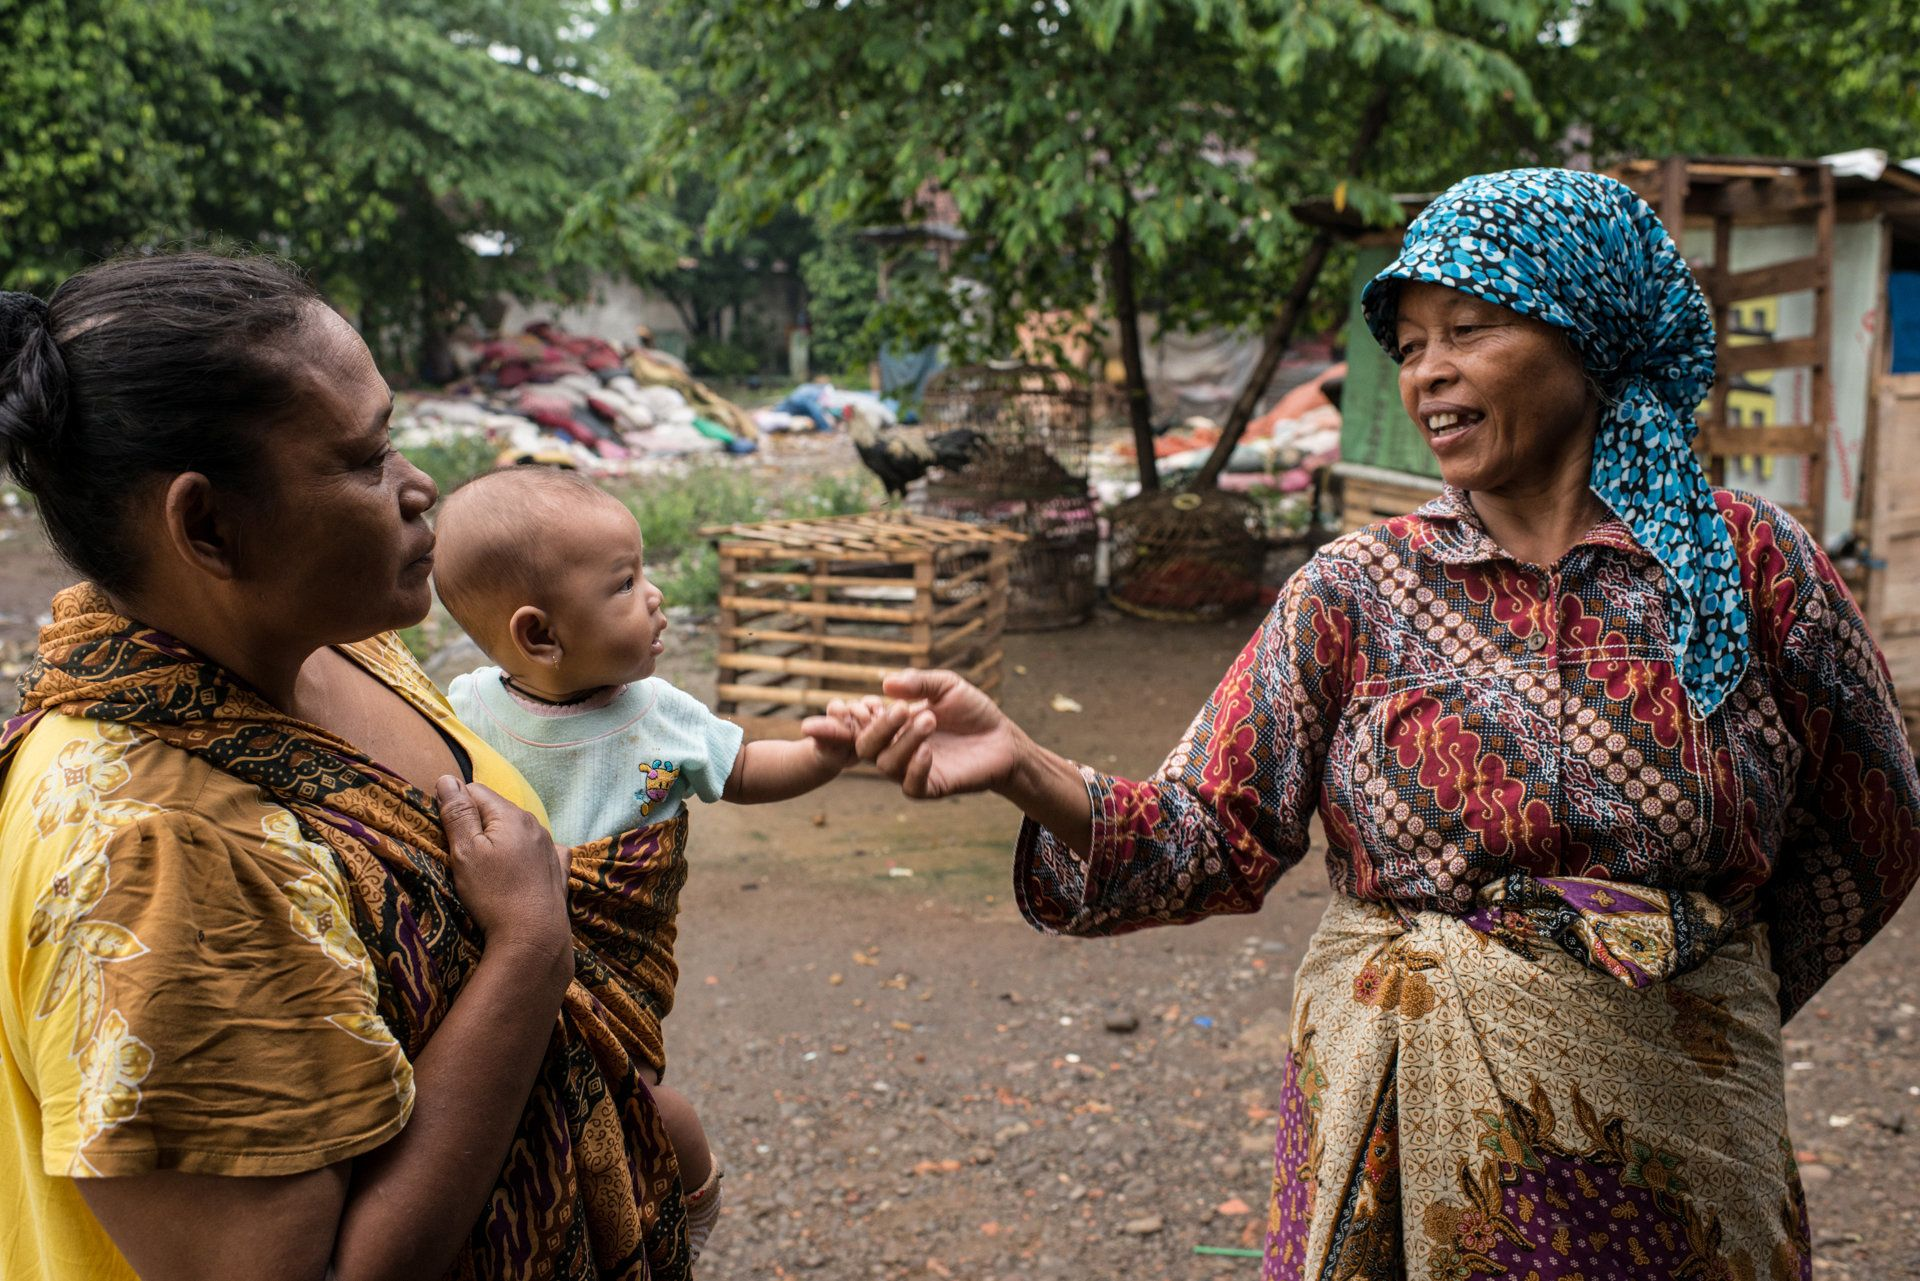 Mak Muji, on a stroll through her village, greets a mother holding a baby she helped deliver.